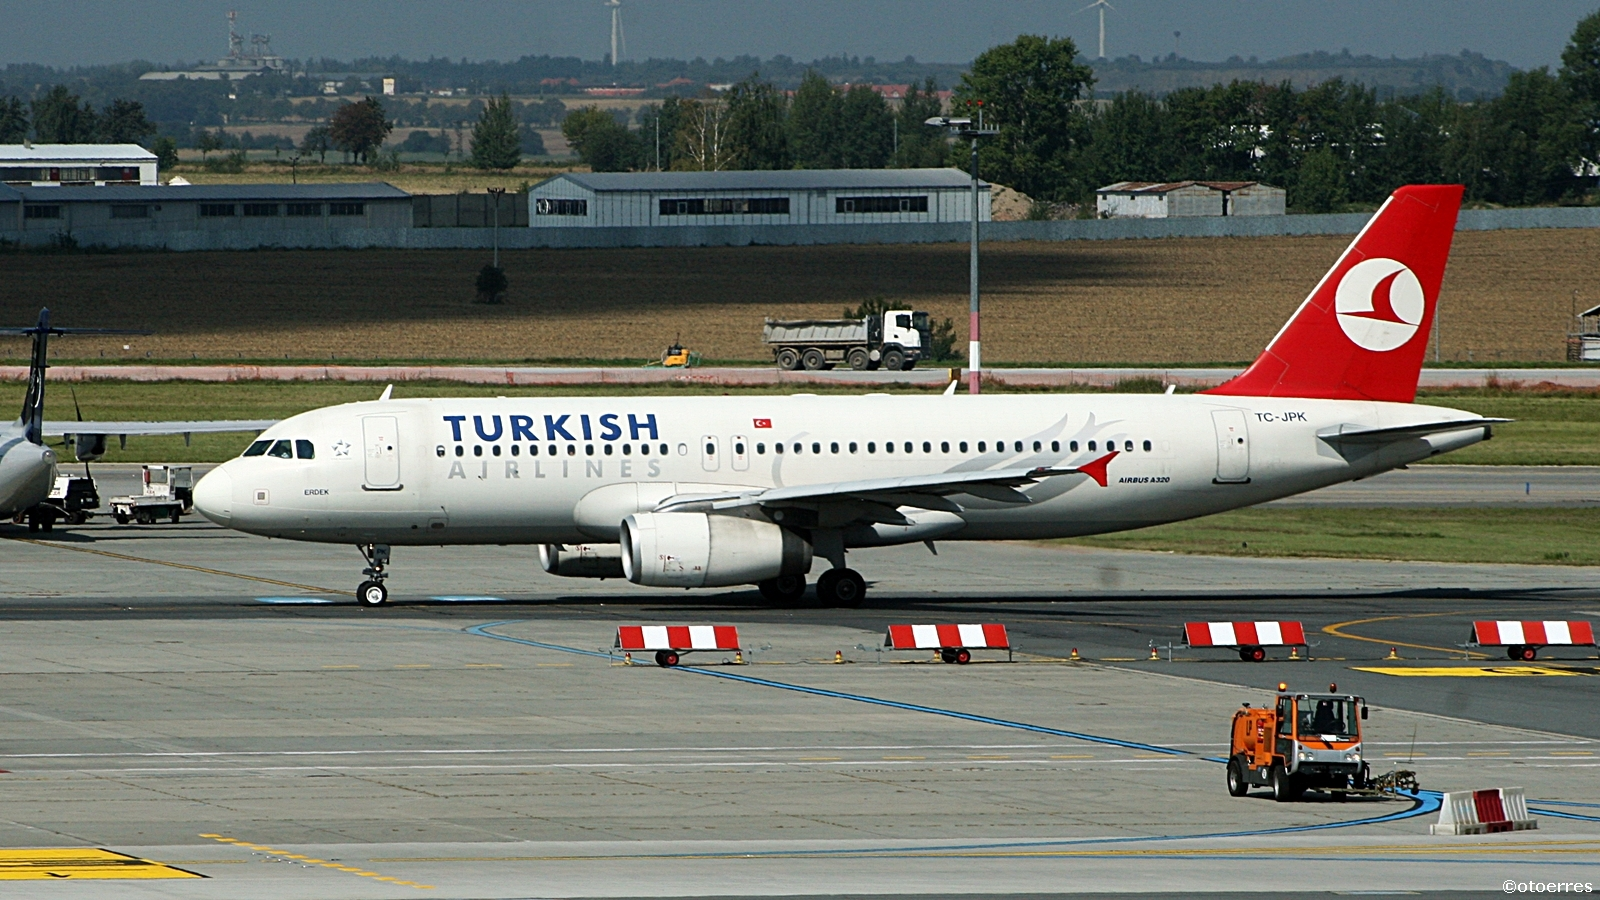 Turkish Airlines Airbus A 320 - Praha - Vaclav Havel airport